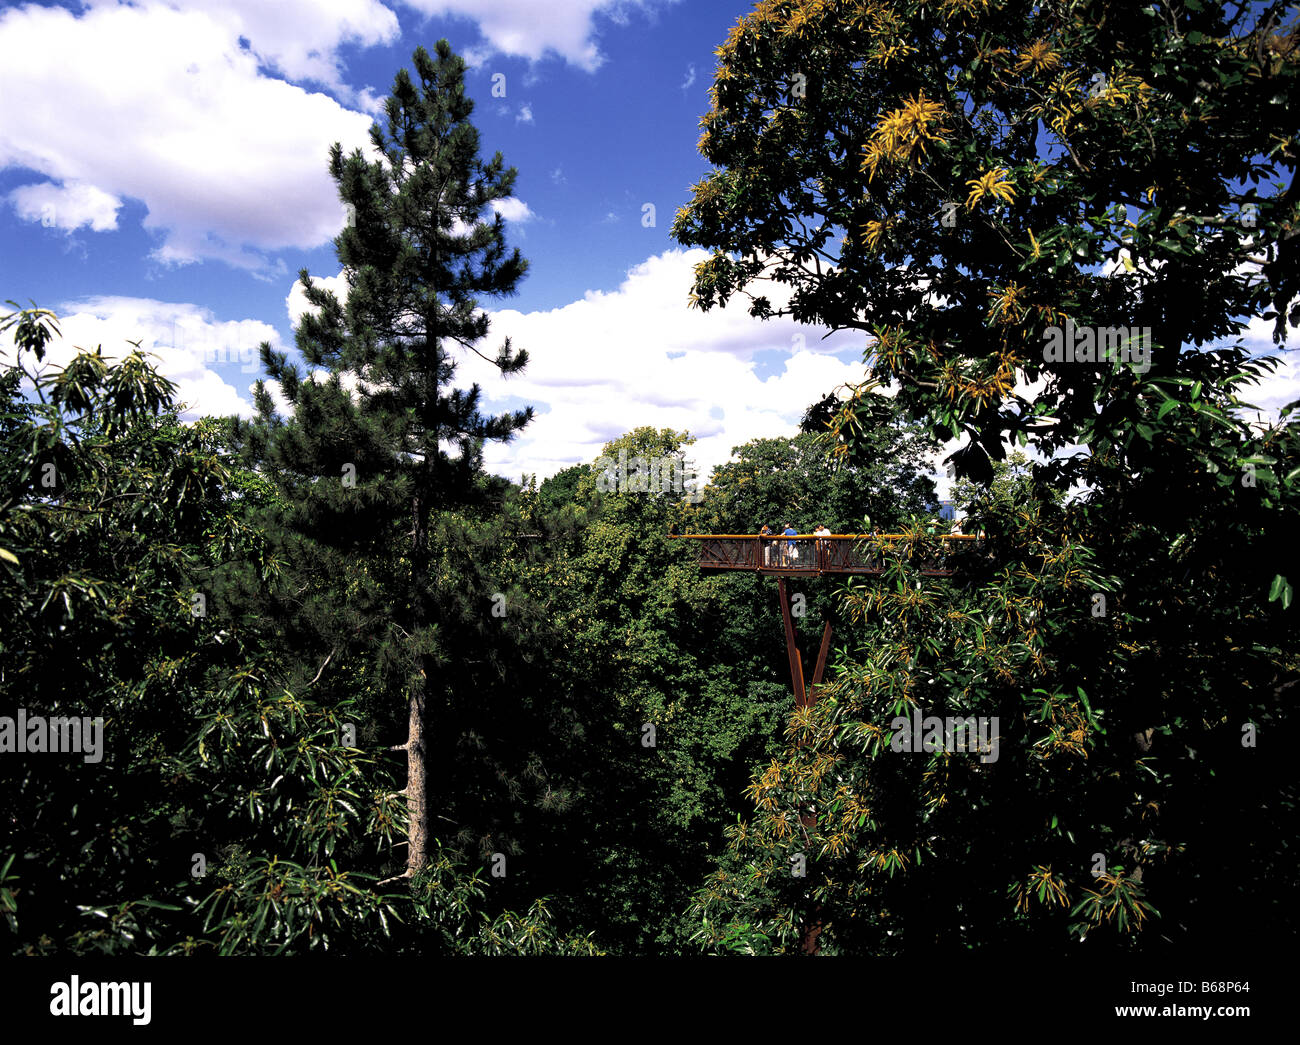 Rhizotron et Xstrata Treetop Walkway au Royal Botanical Gardens Kew Richemond London England Photo Stock